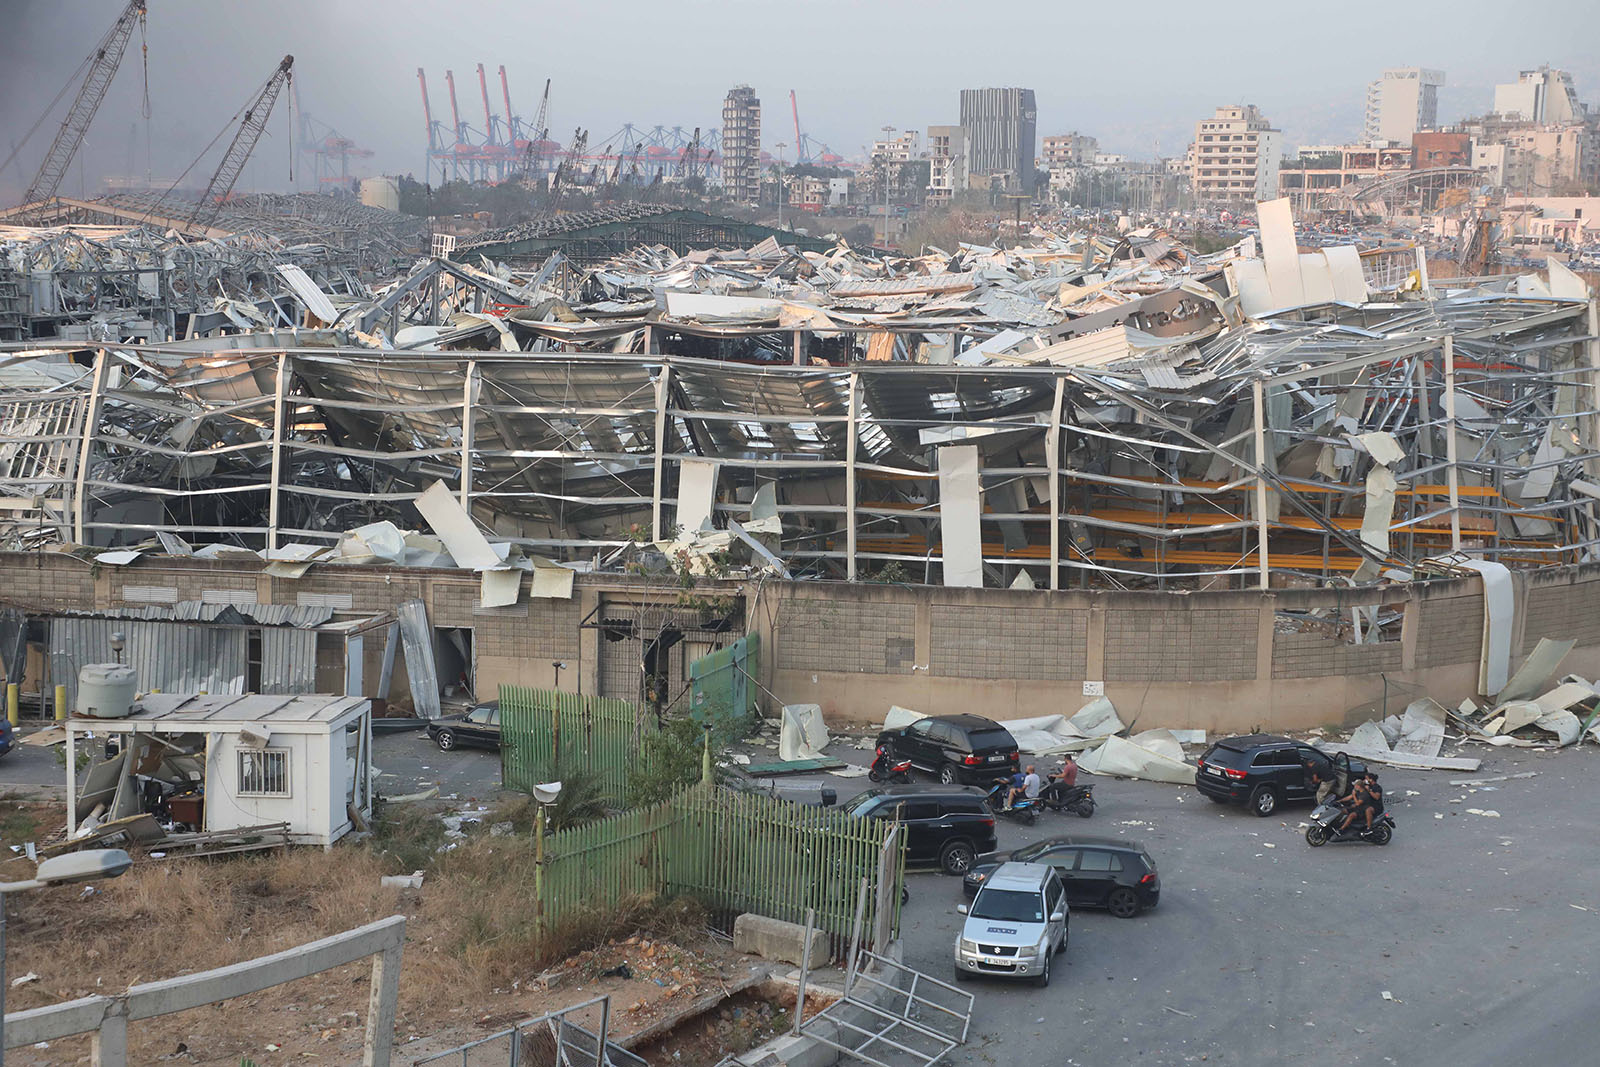 Damaged buildings are seen after the explosion at the port of Beirut, Lebanon, August 4.